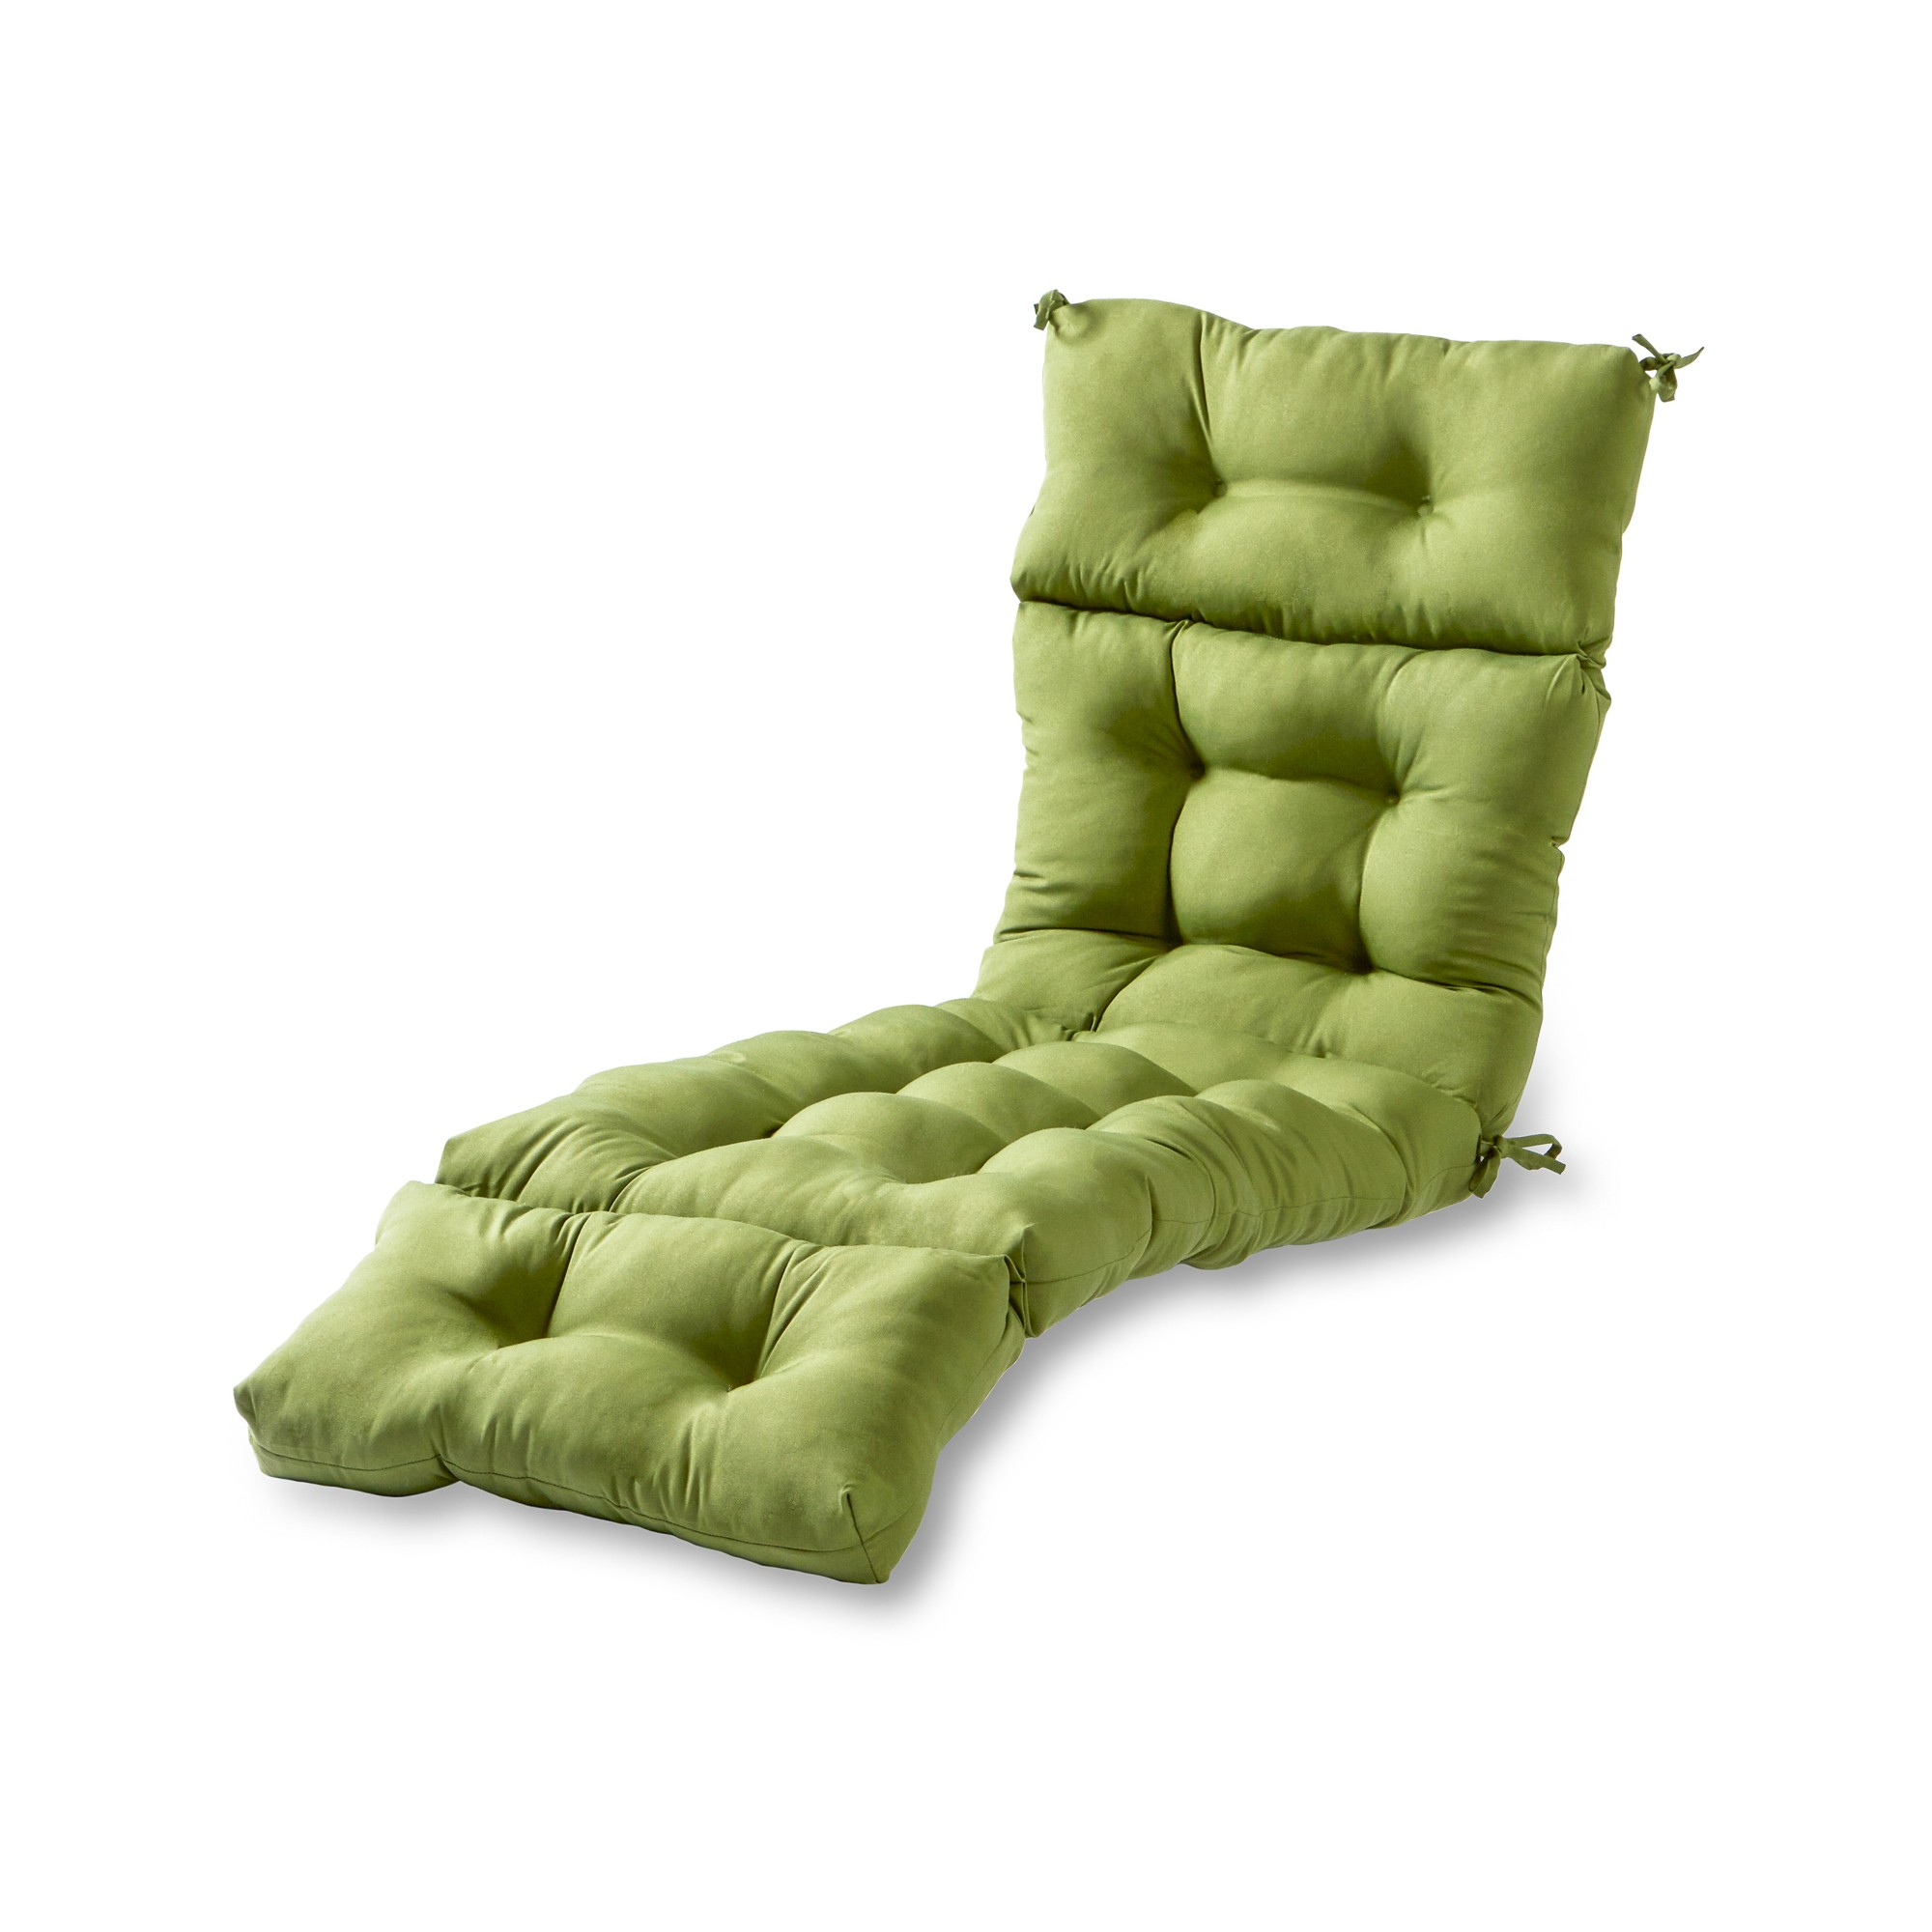 cot recliner bed sun fold patio itm chair lounge chaise green beach pool camping outdoor